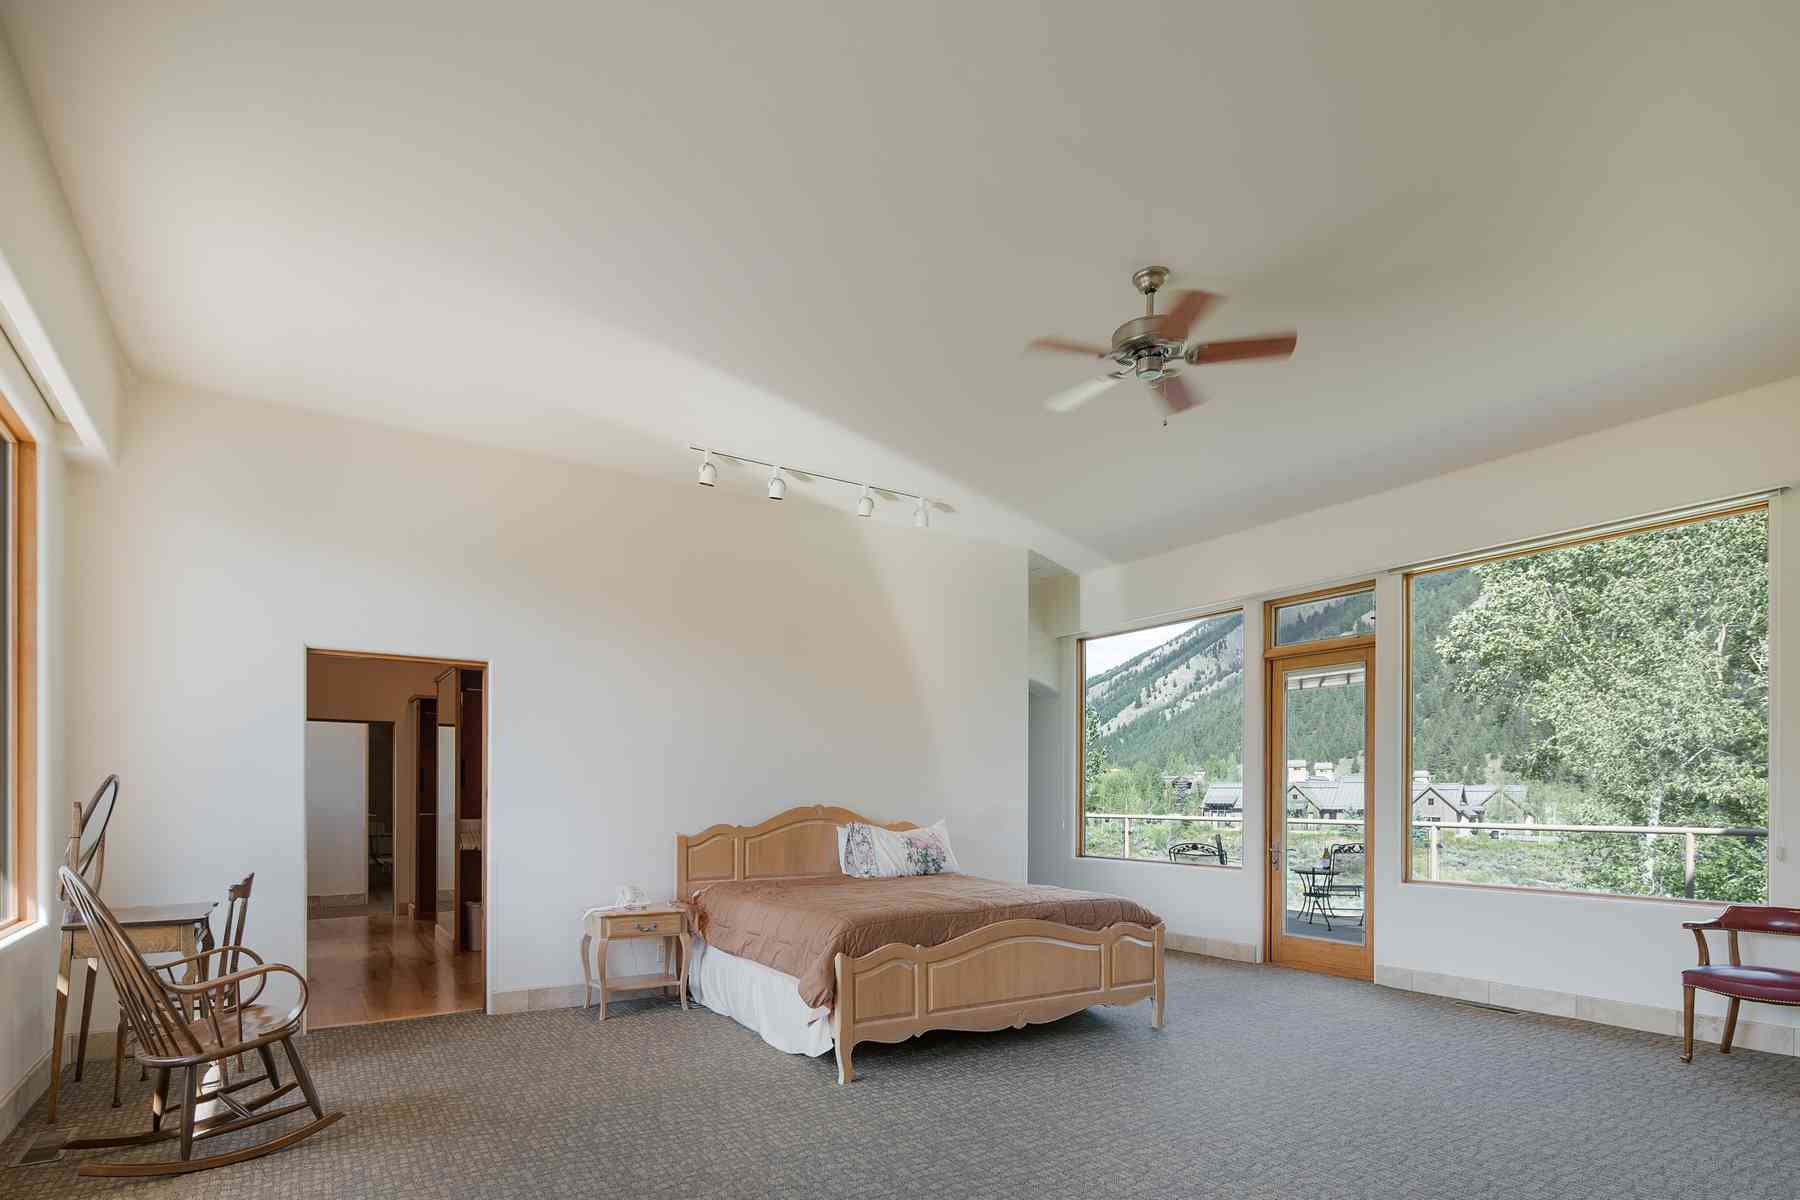 Additional photo for property listing at One of a kind Contemporary Home 205 Canyon Road 太阳谷, 爱达荷州 83353 美国